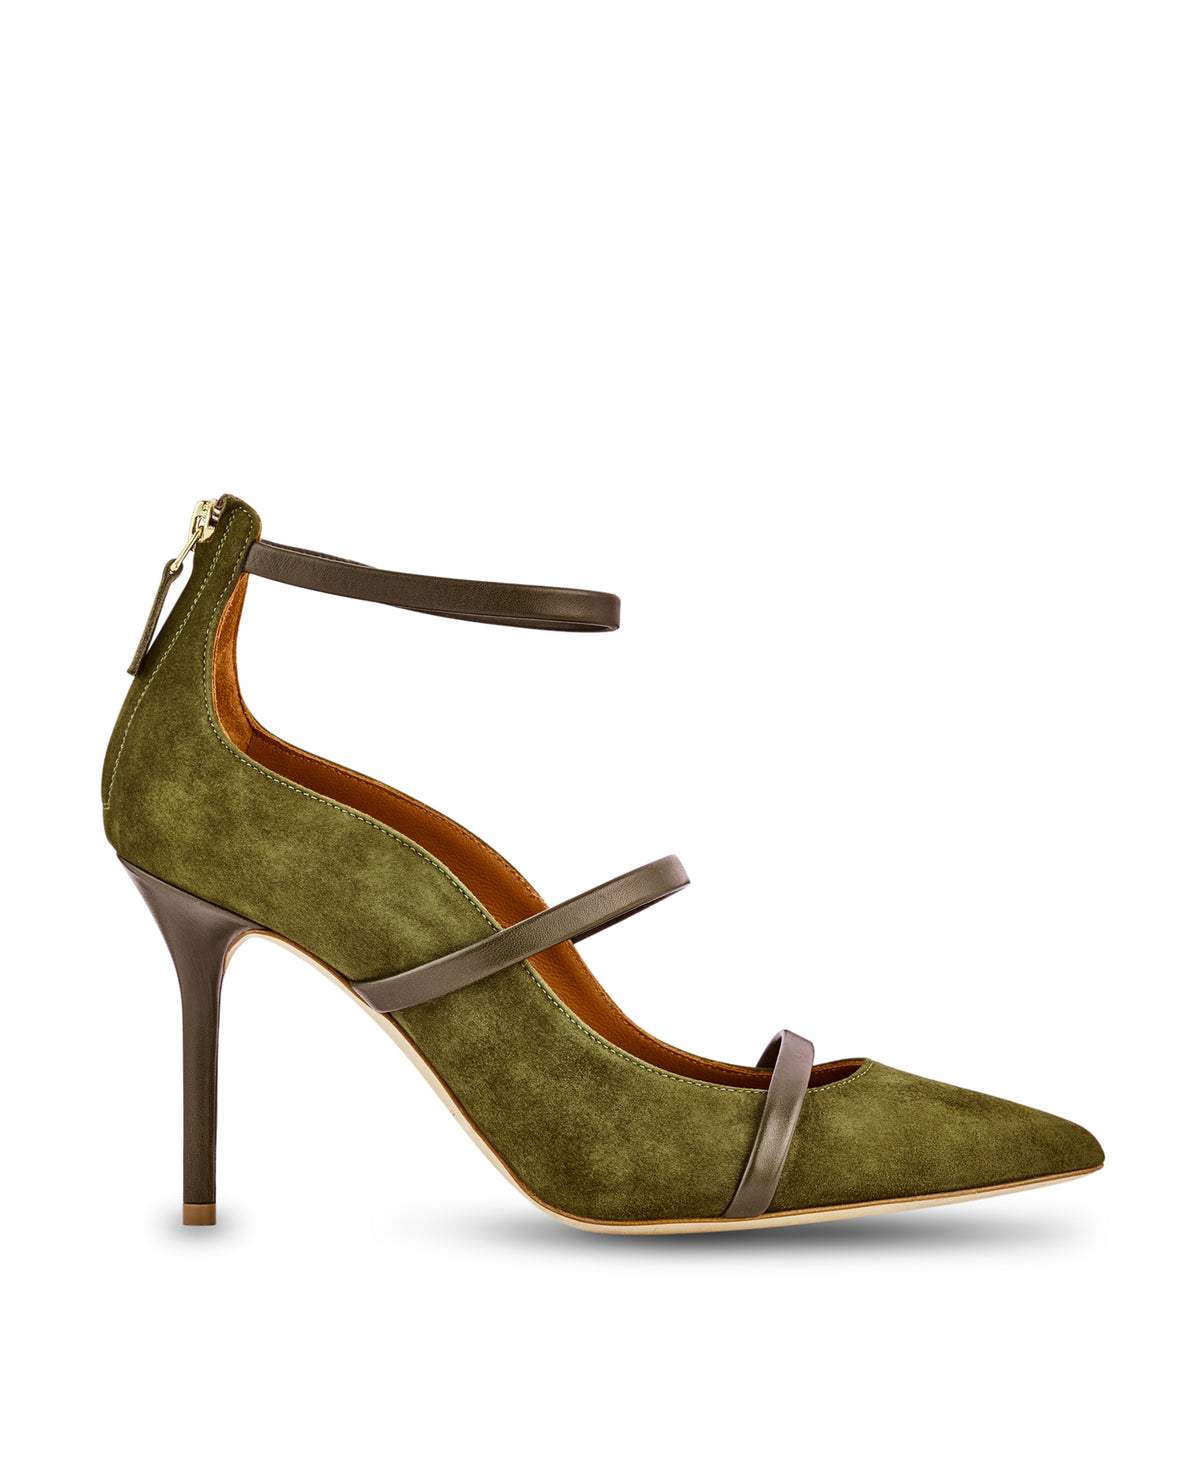 ROBYN 85mm - Moss Suede Nappa